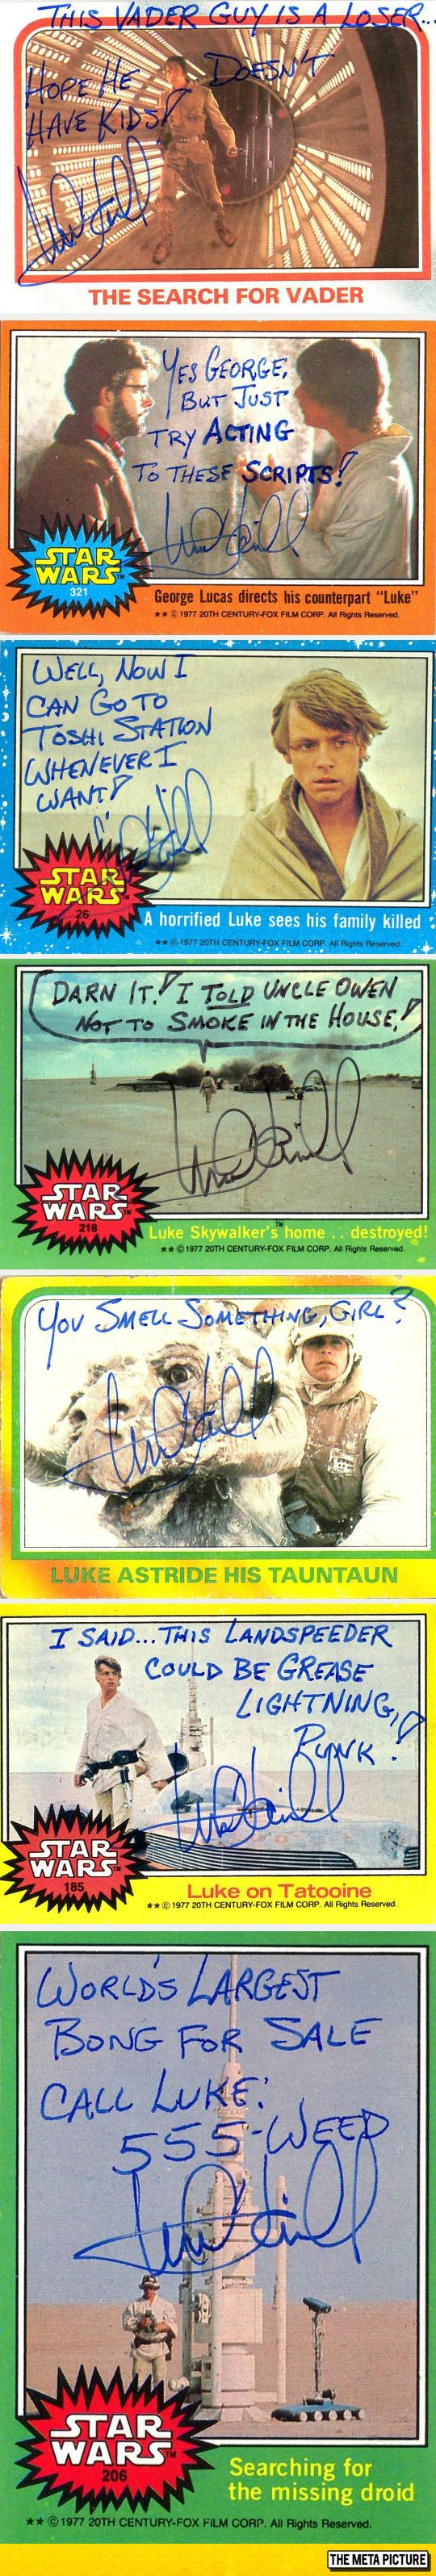 Mark Hamill Autographs Are Apparently Hilarious - this makes me like him even more. I want one!!